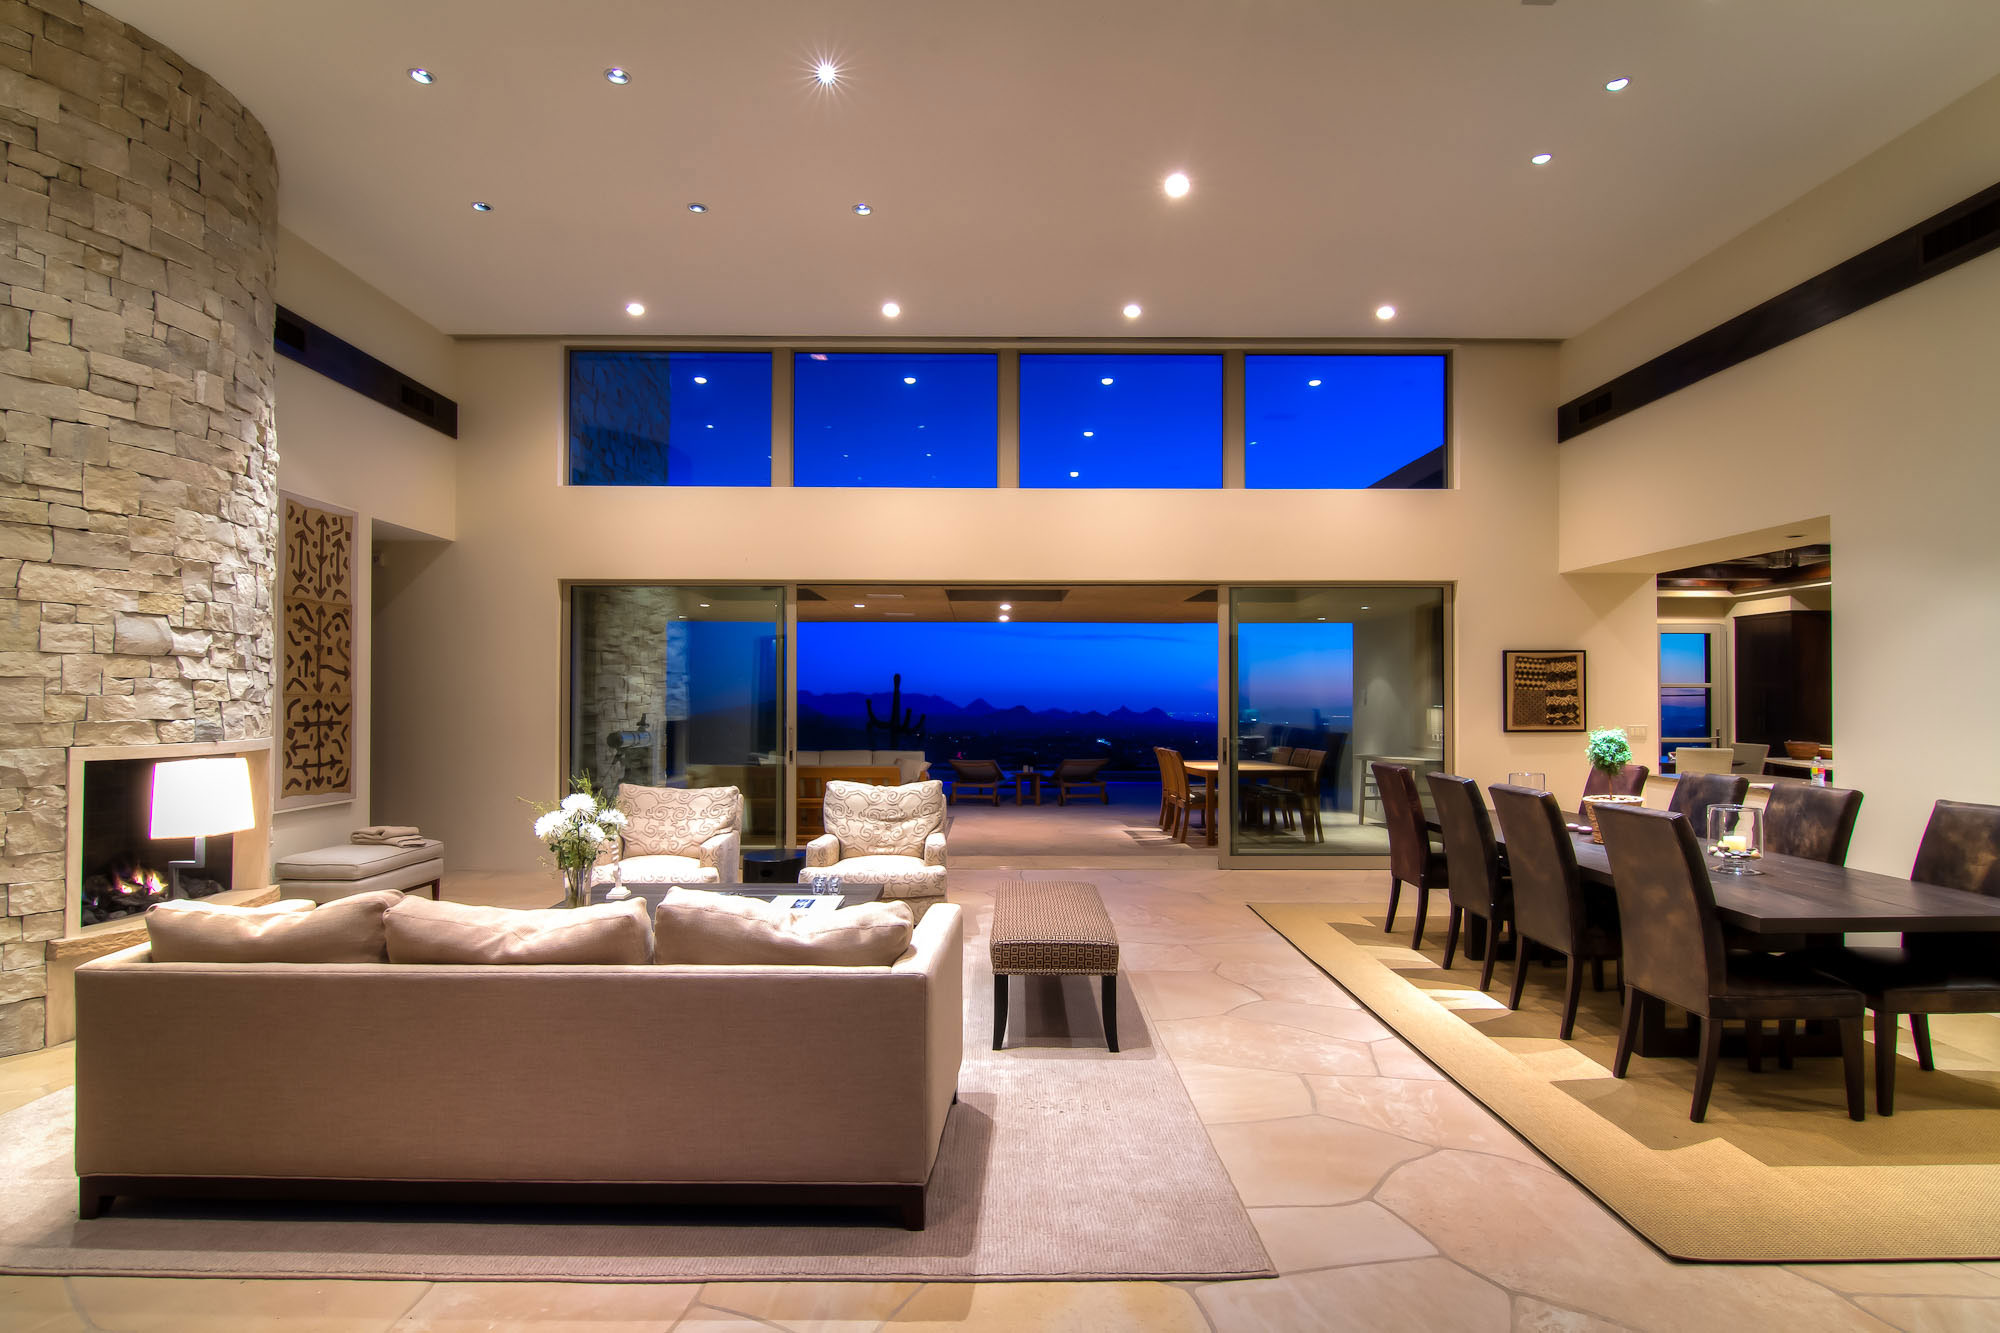 Shanholt residence by brissette architects - Living room definition architecture ...